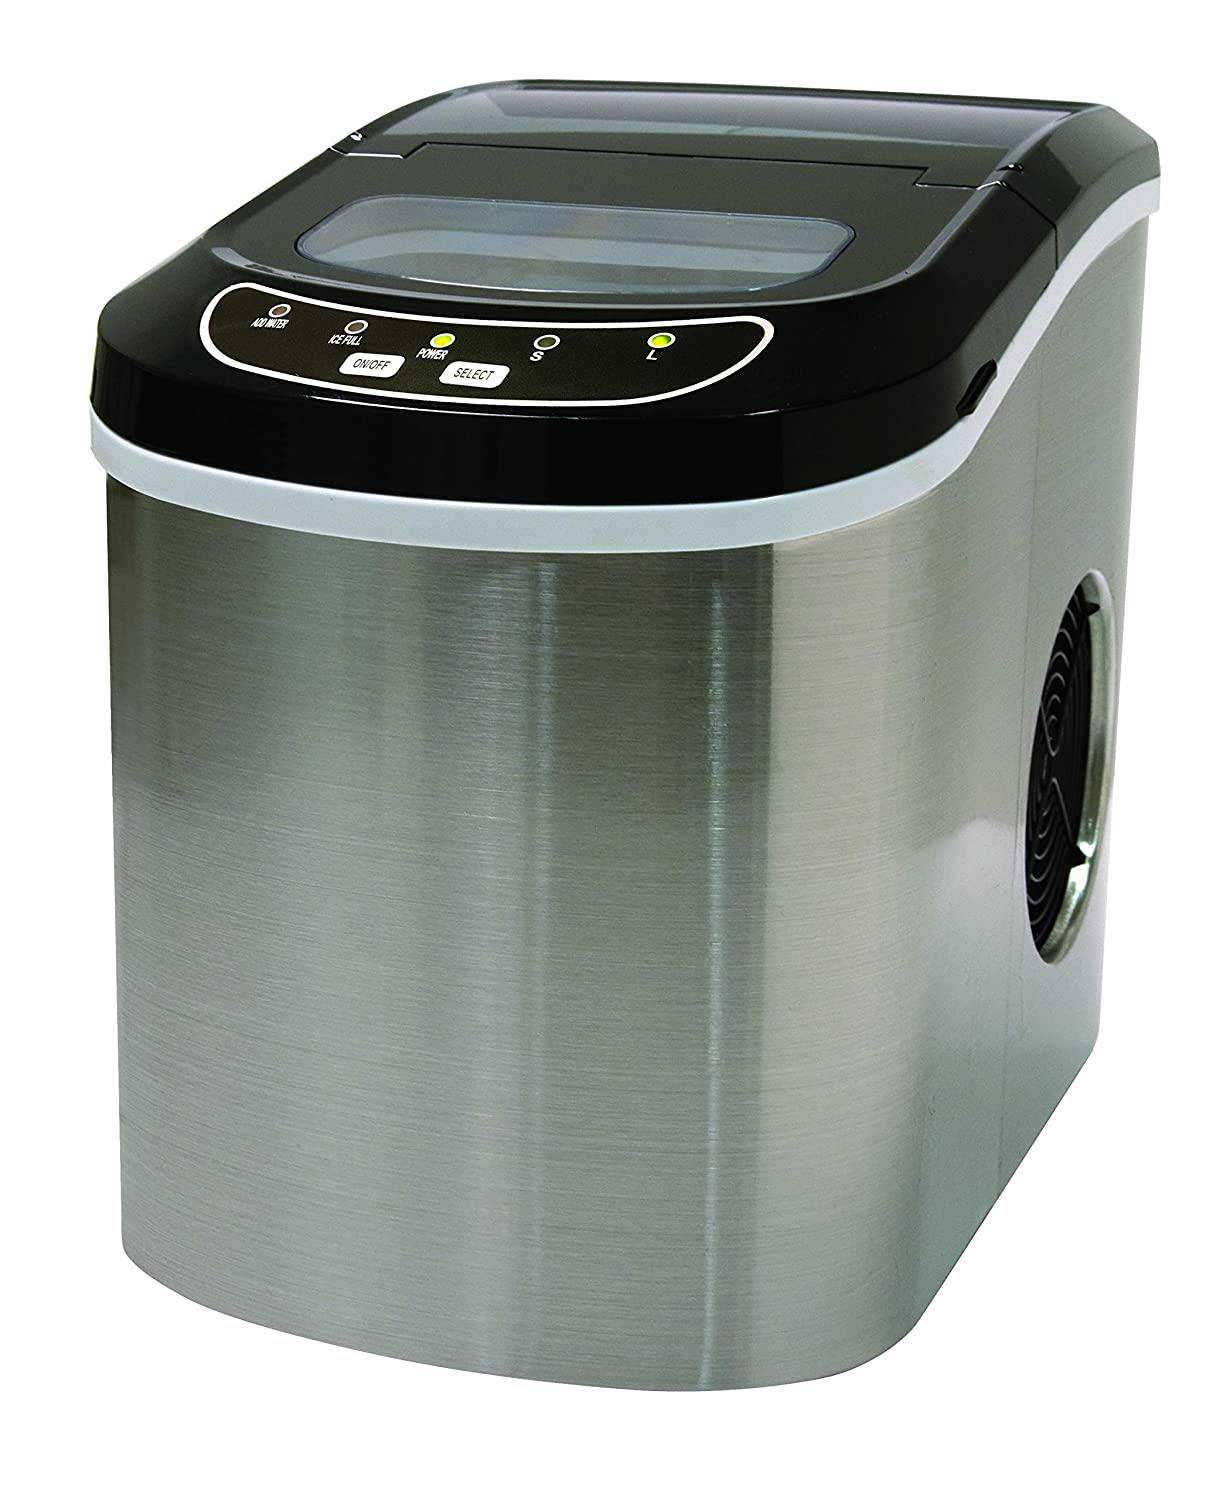 Stainless Steel 26 Lbs Counter Top Ice Maker Curtis International LTD ICE102ST